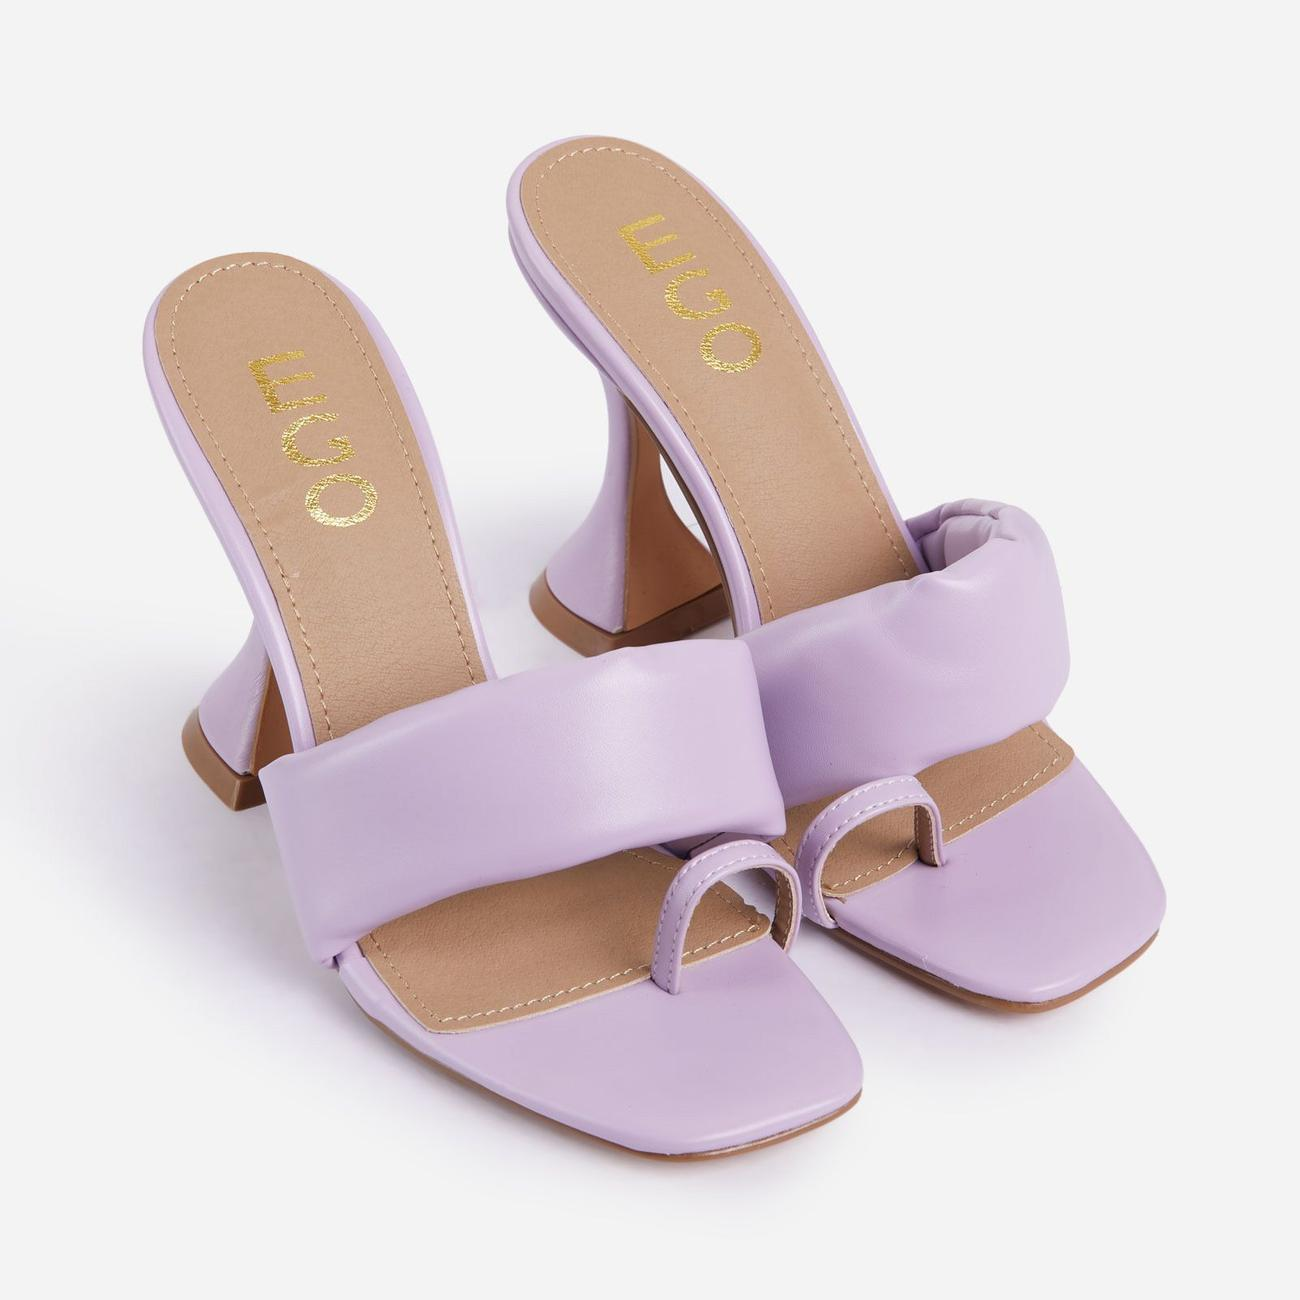 You-Wish Square Toe Padded Pyramid Heel Mule In Lilac Faux Leather Image 2